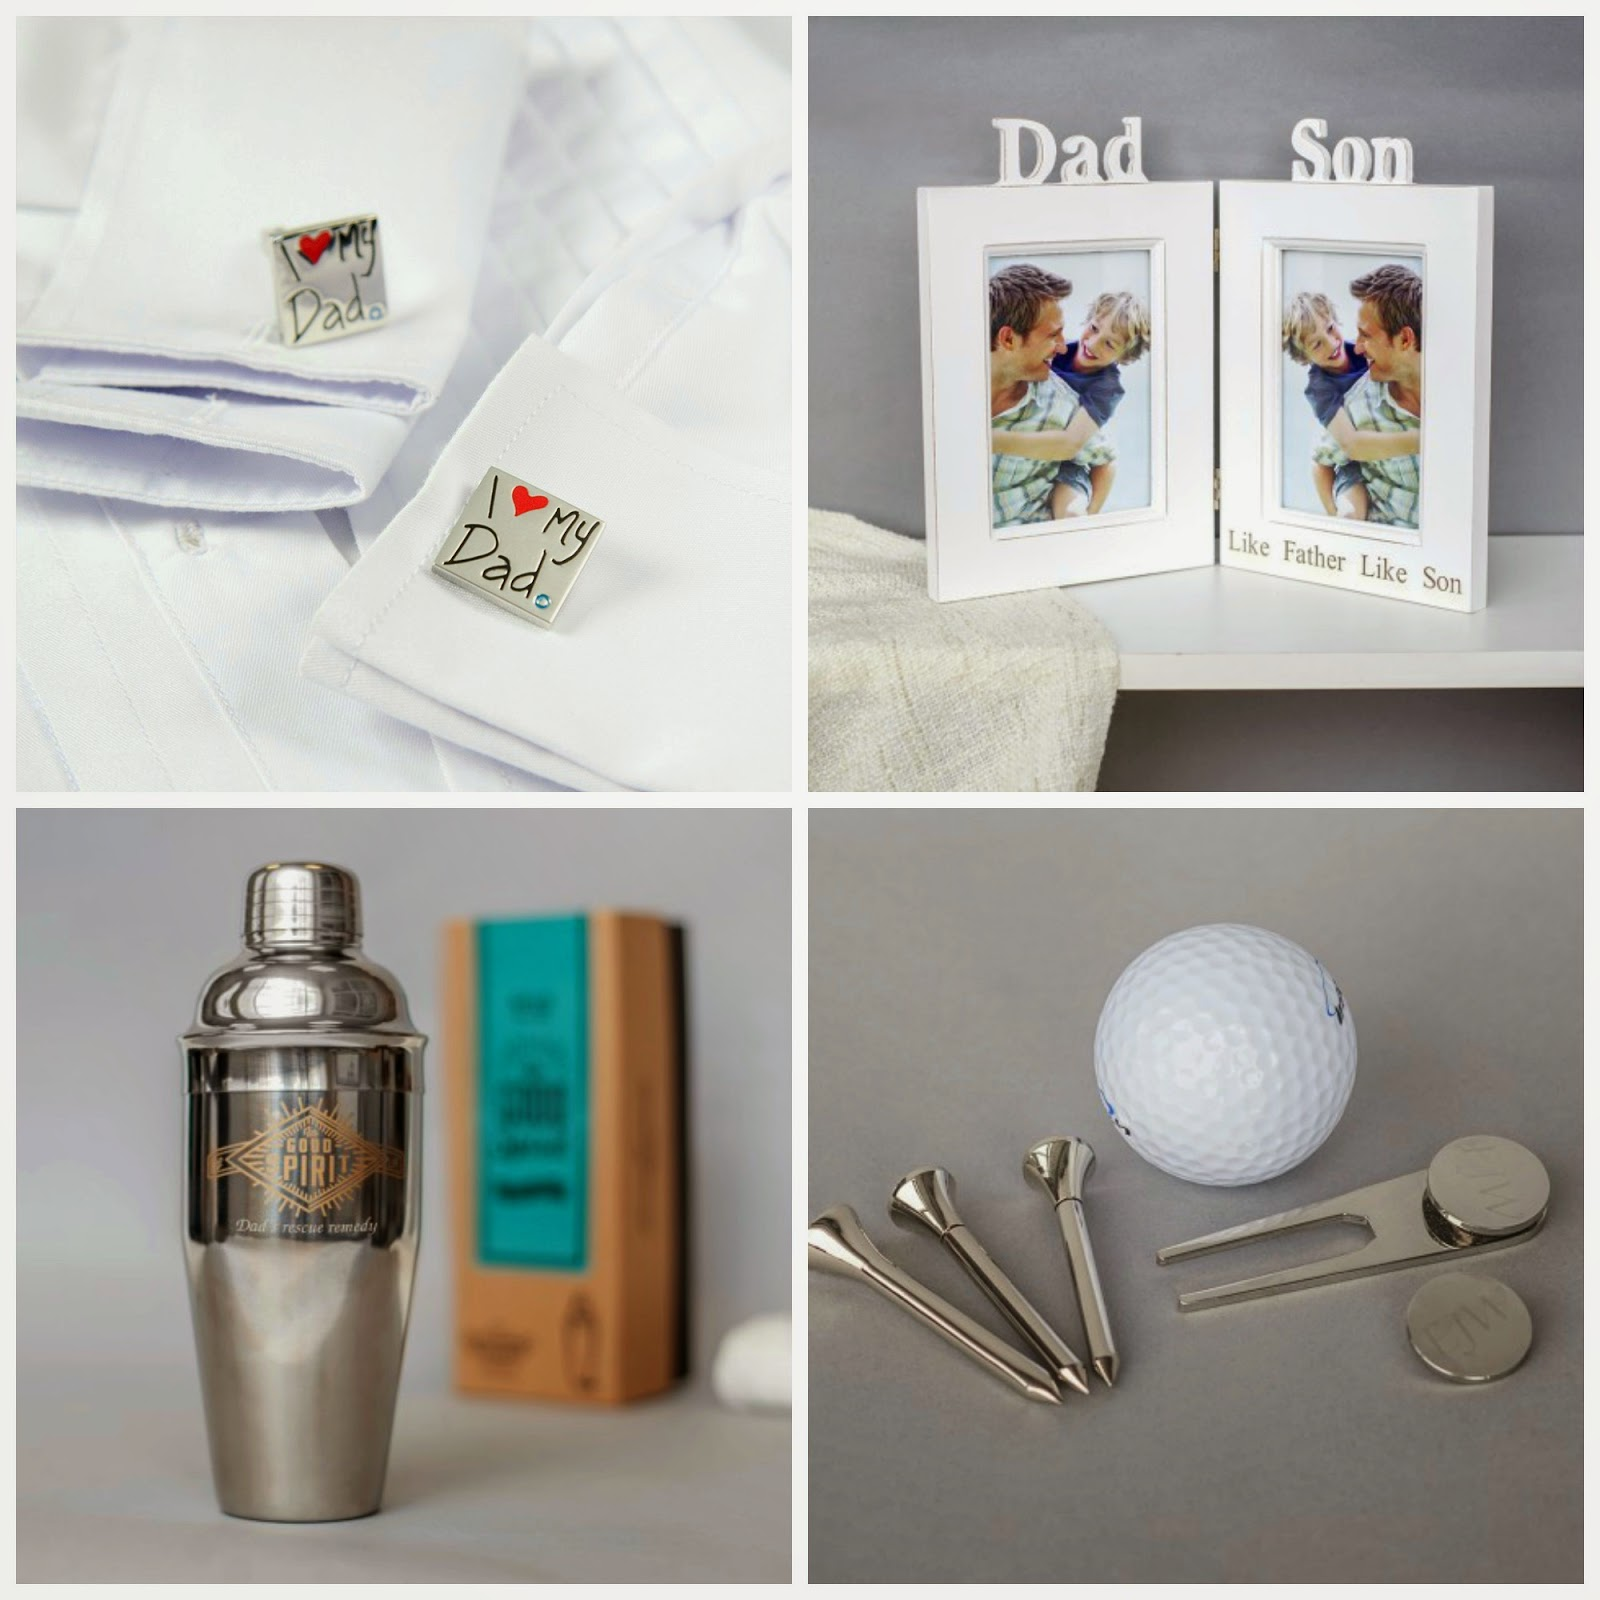 Fathers' Day, personalised gifts for dad, gift ideas